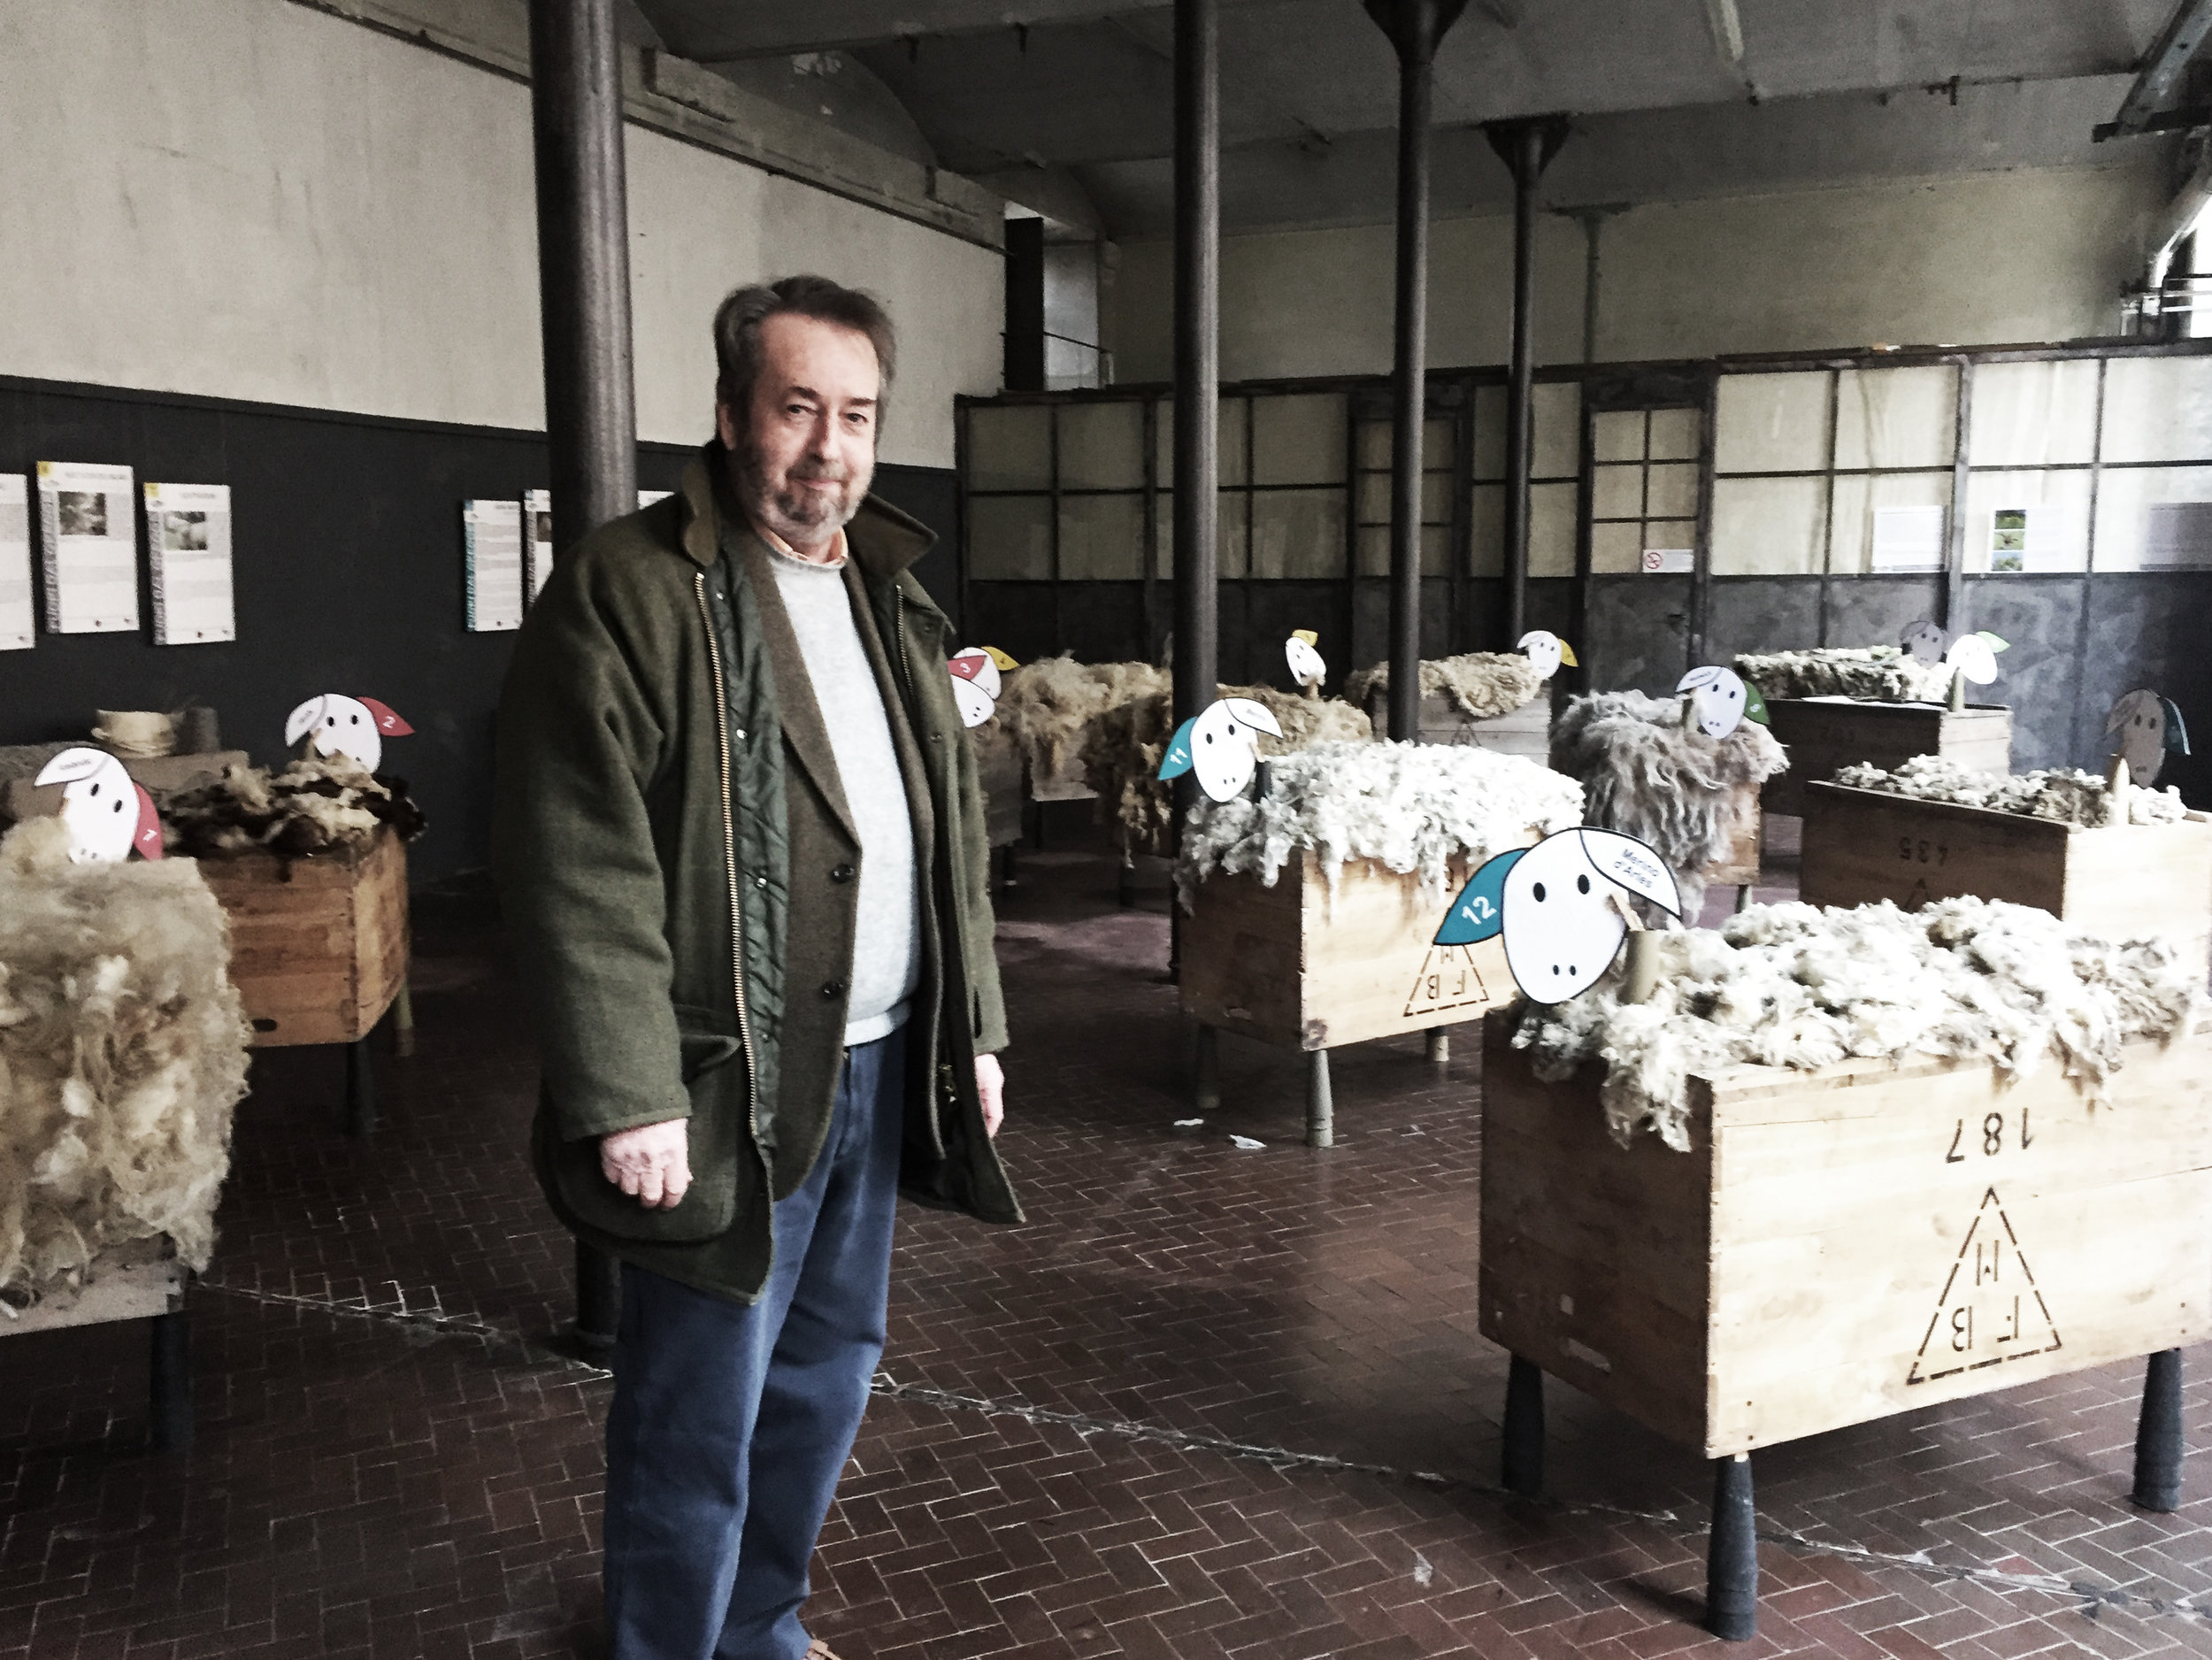 A man, Nigel Thompson, stands in the middle of a room with wooden crates full of different type of sheep's wool behind him